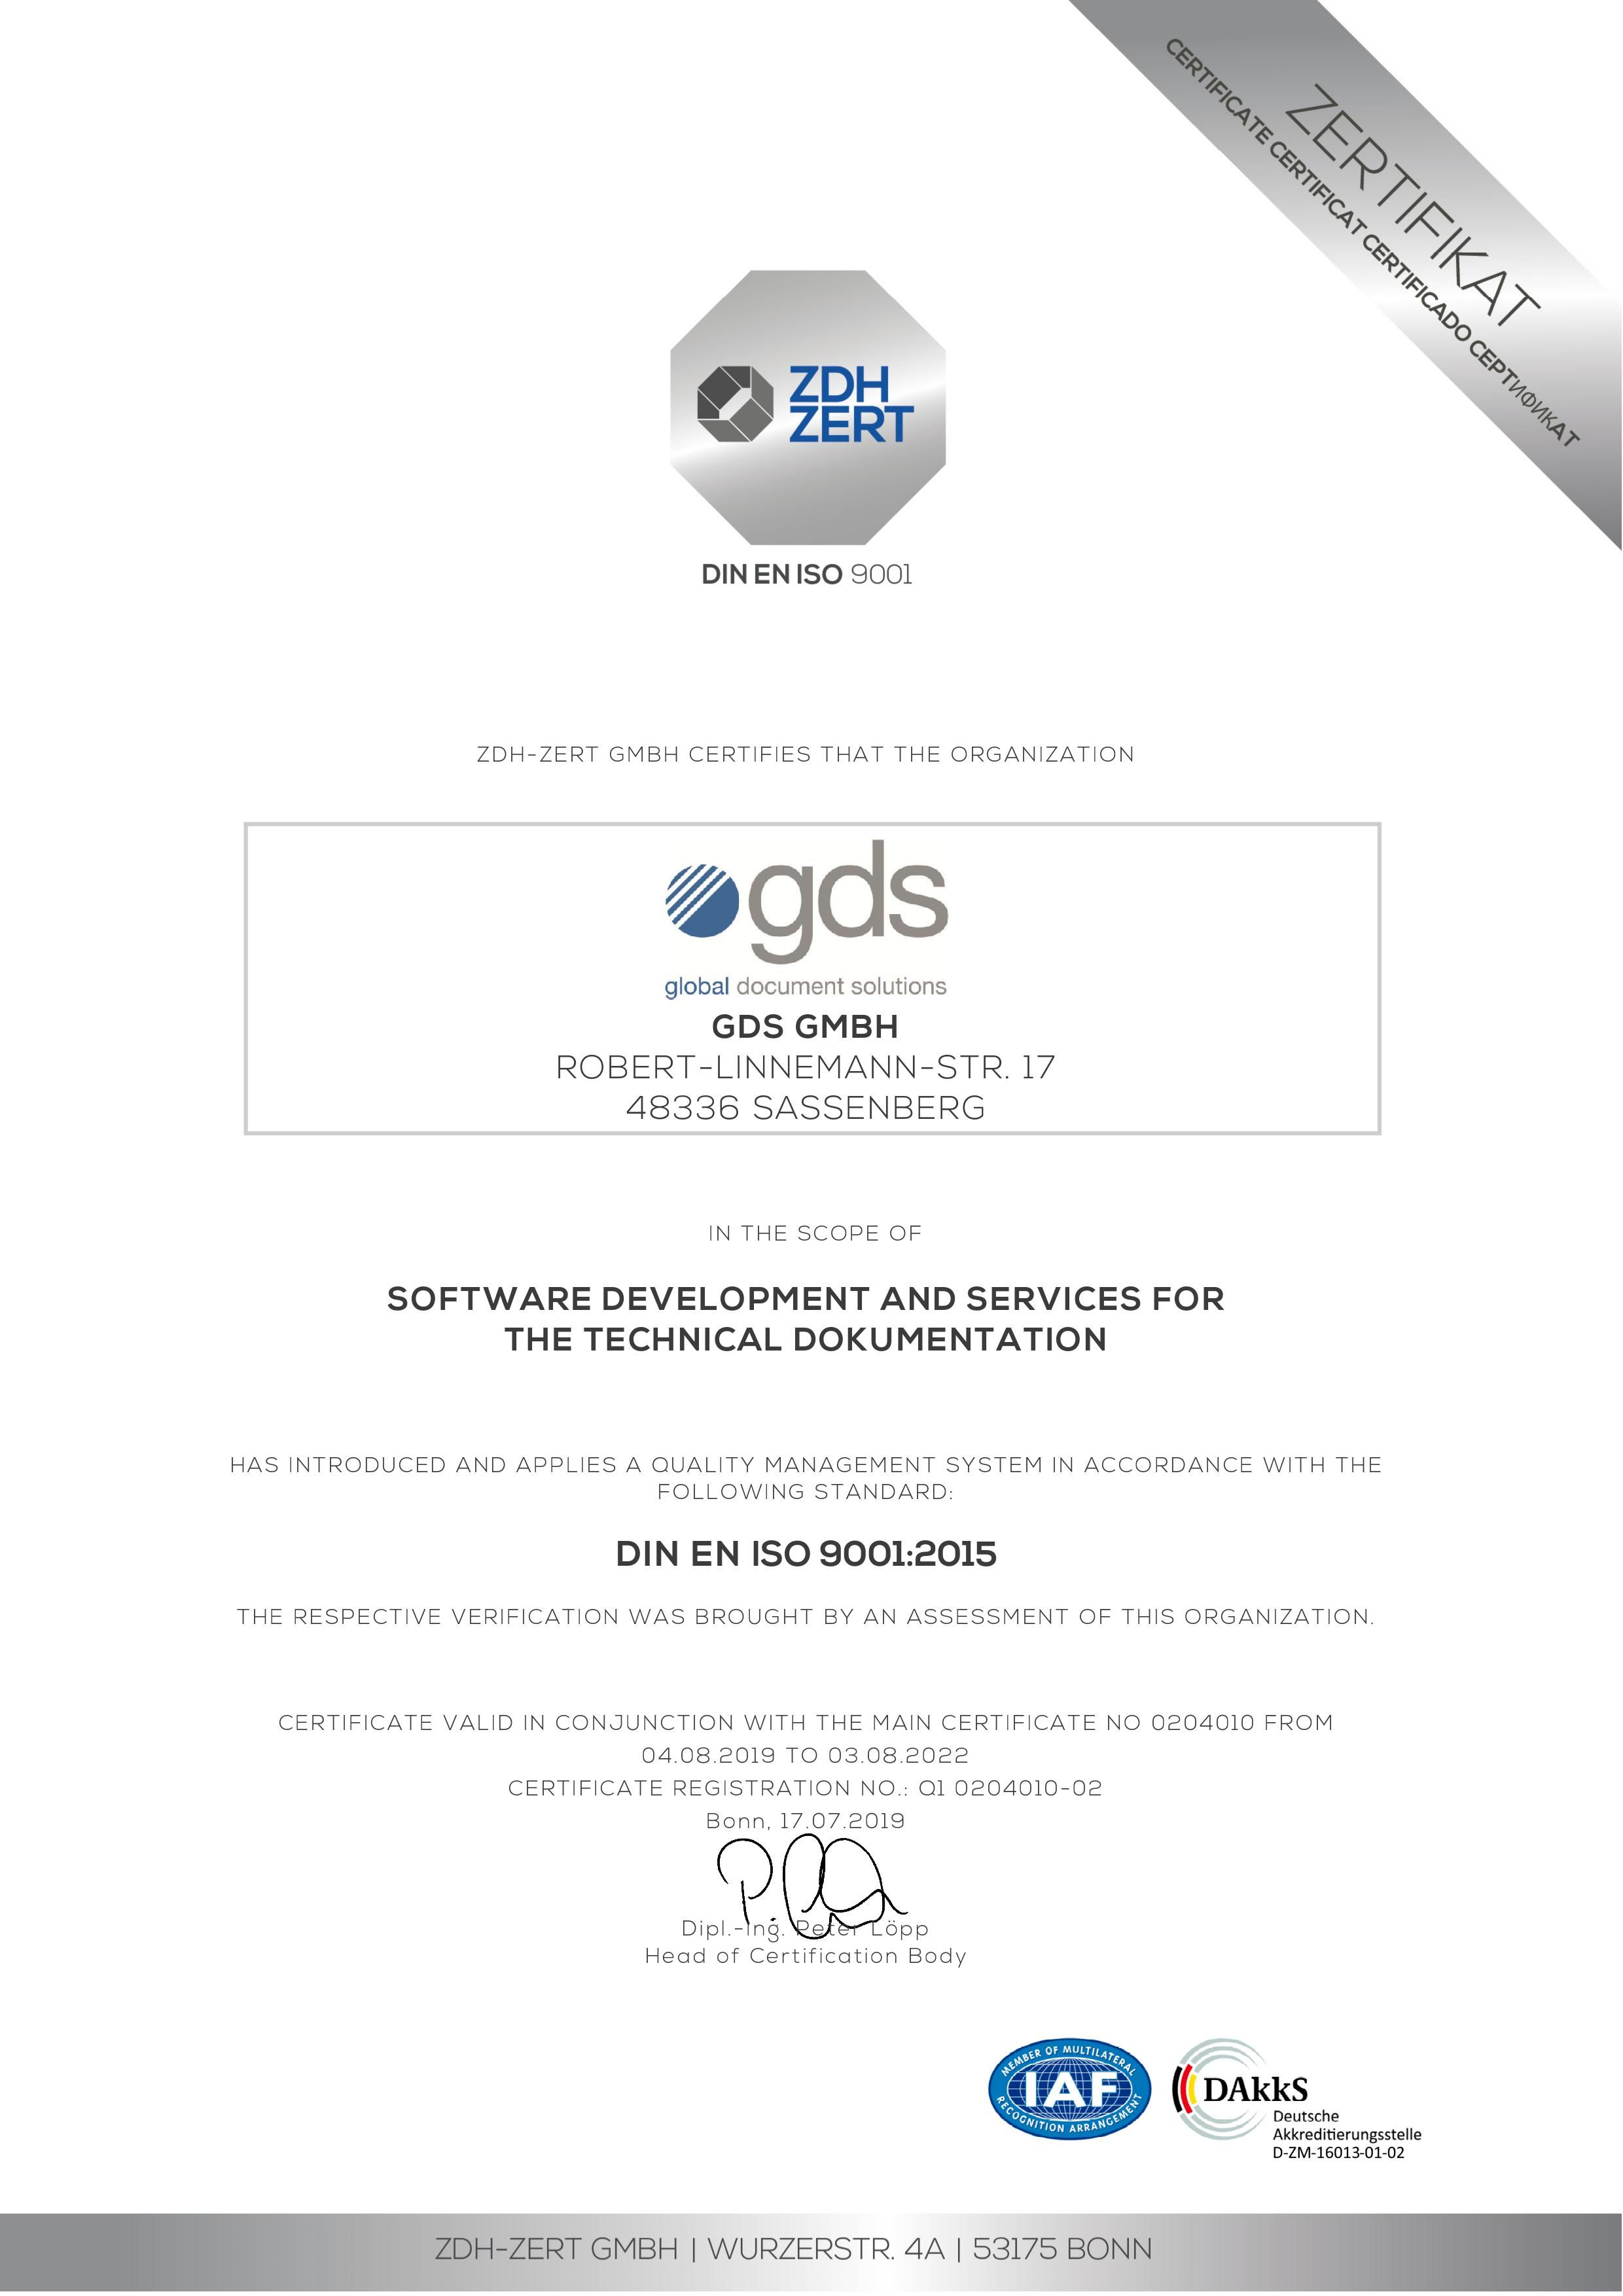 ZDH-Zert GmbH certifies that gds GmbH has introduced and applied a quality management system in the fields of software development and documentation services in accordance with the DIN EN ISO 9001:2015 standard.